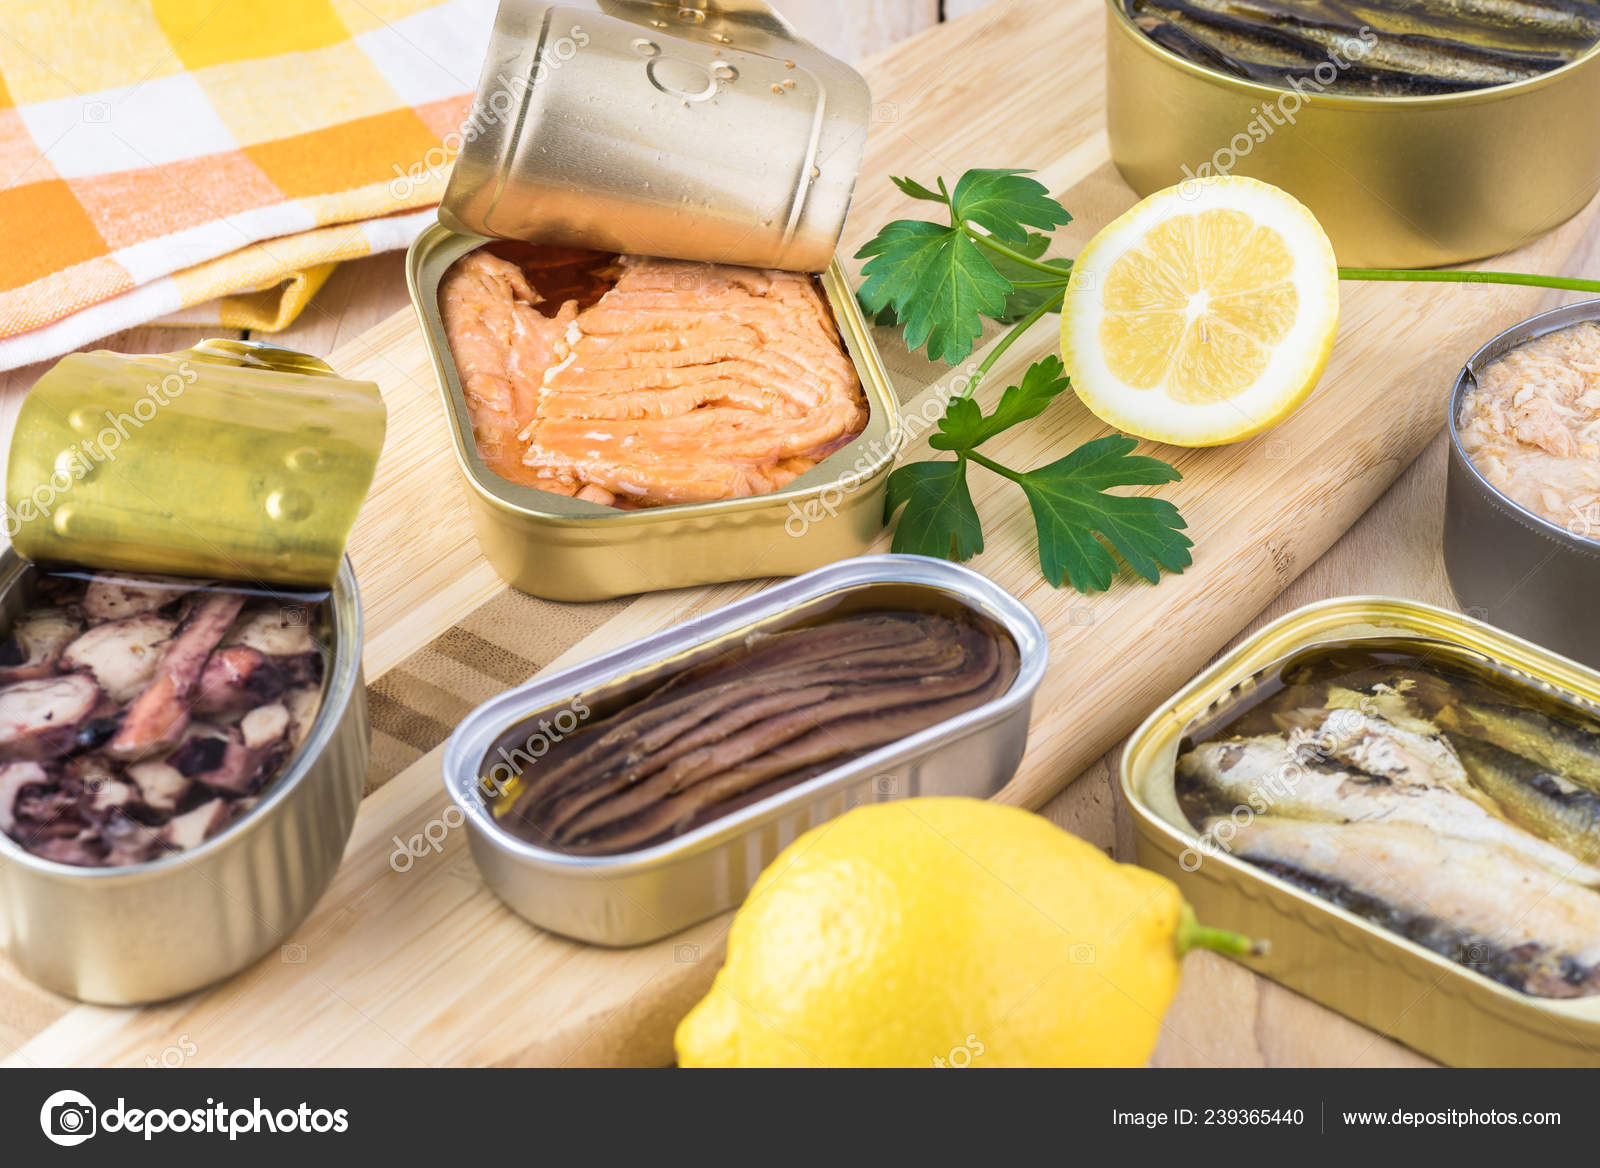 Varieties Open Canned Fish Tin Cans Smoked Salmon Fillets Sardines Stock Photo C Russiandoll 239365440